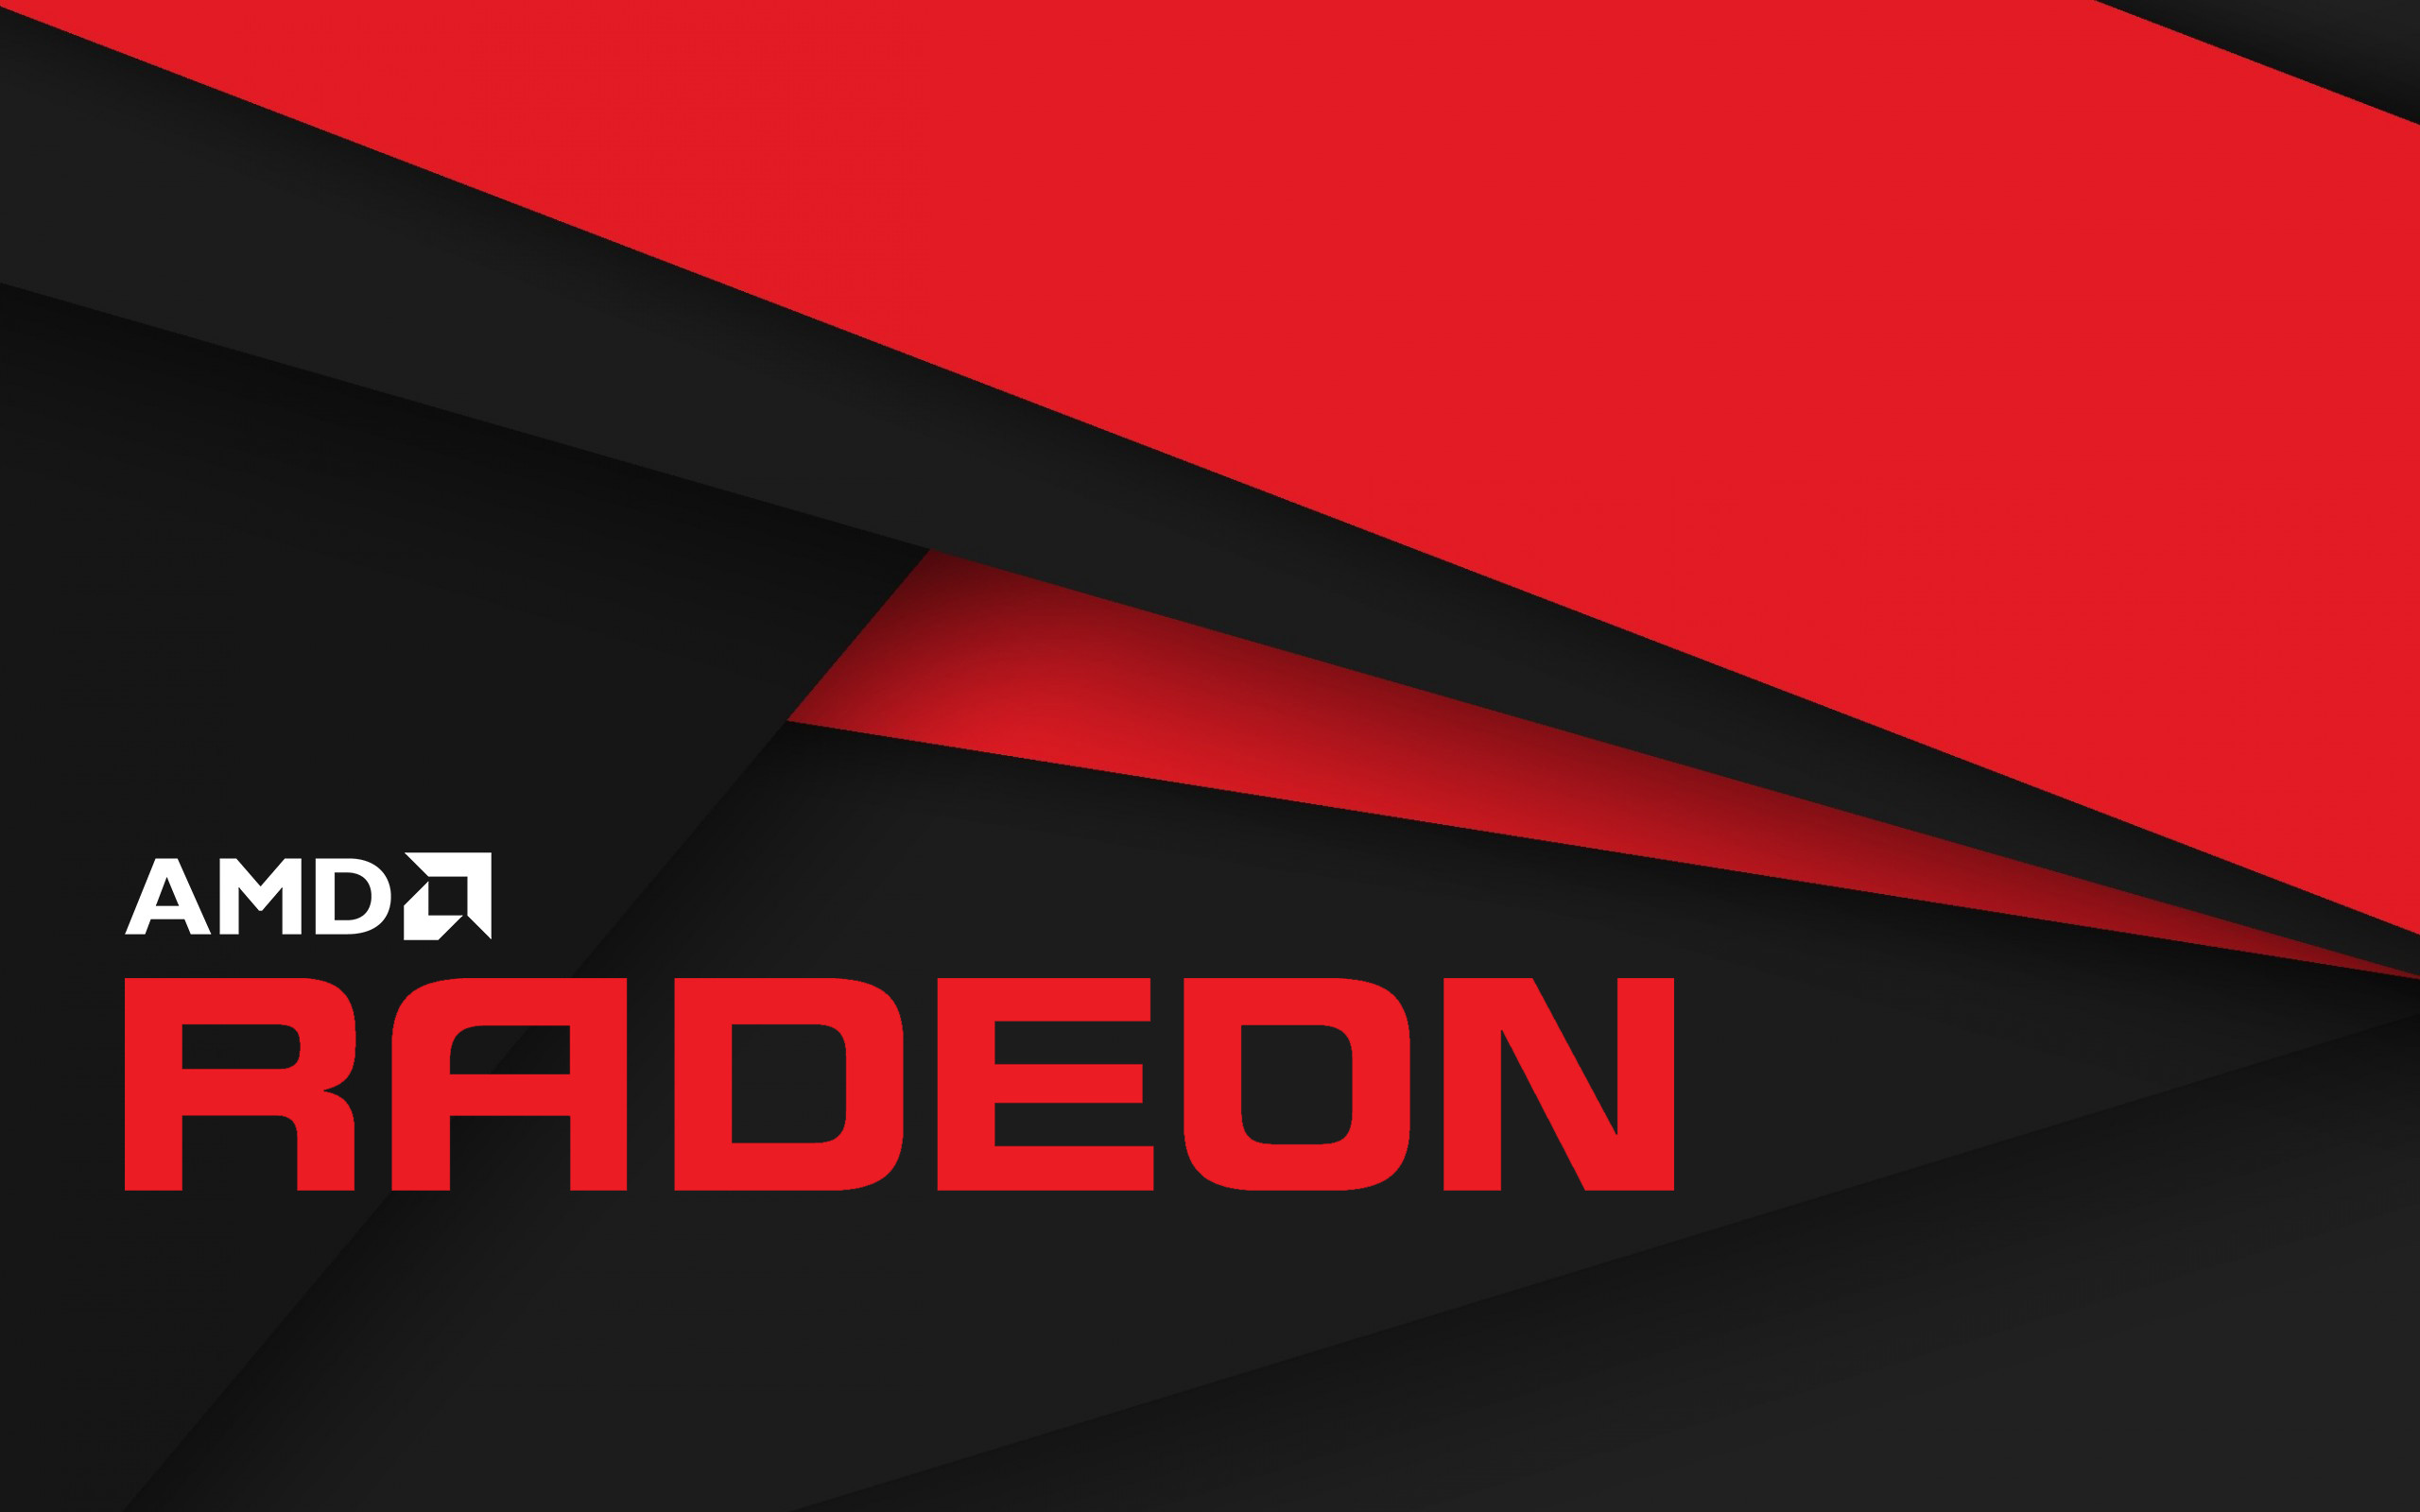 amd radeon wallpapers hd - photo #9